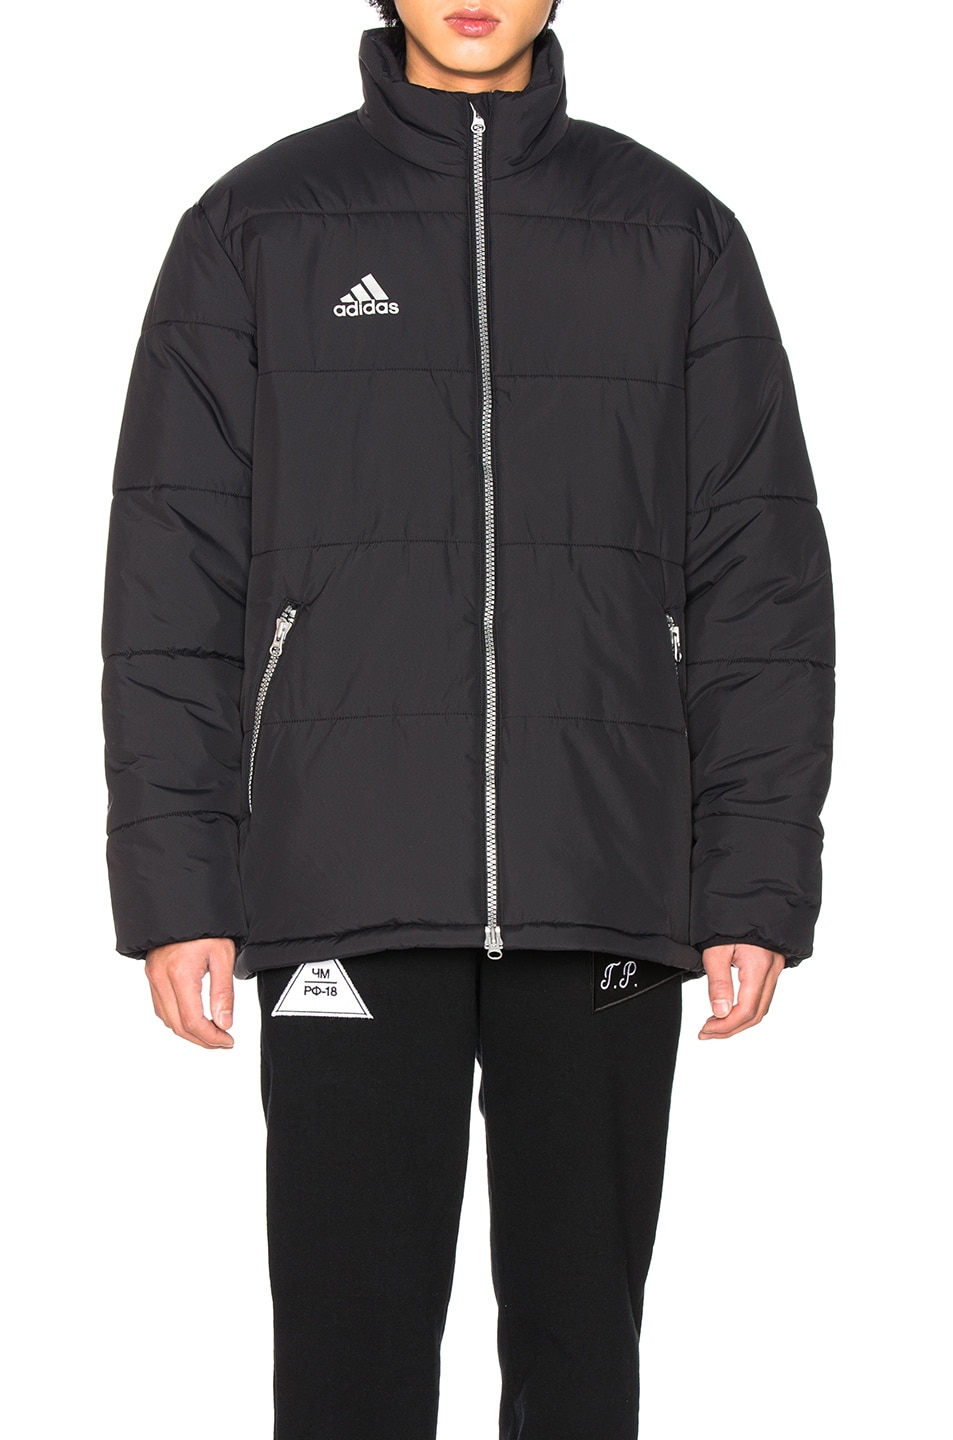 Image 2 of Gosha Rubchinskiy x Adidas Padded Jacket in Black